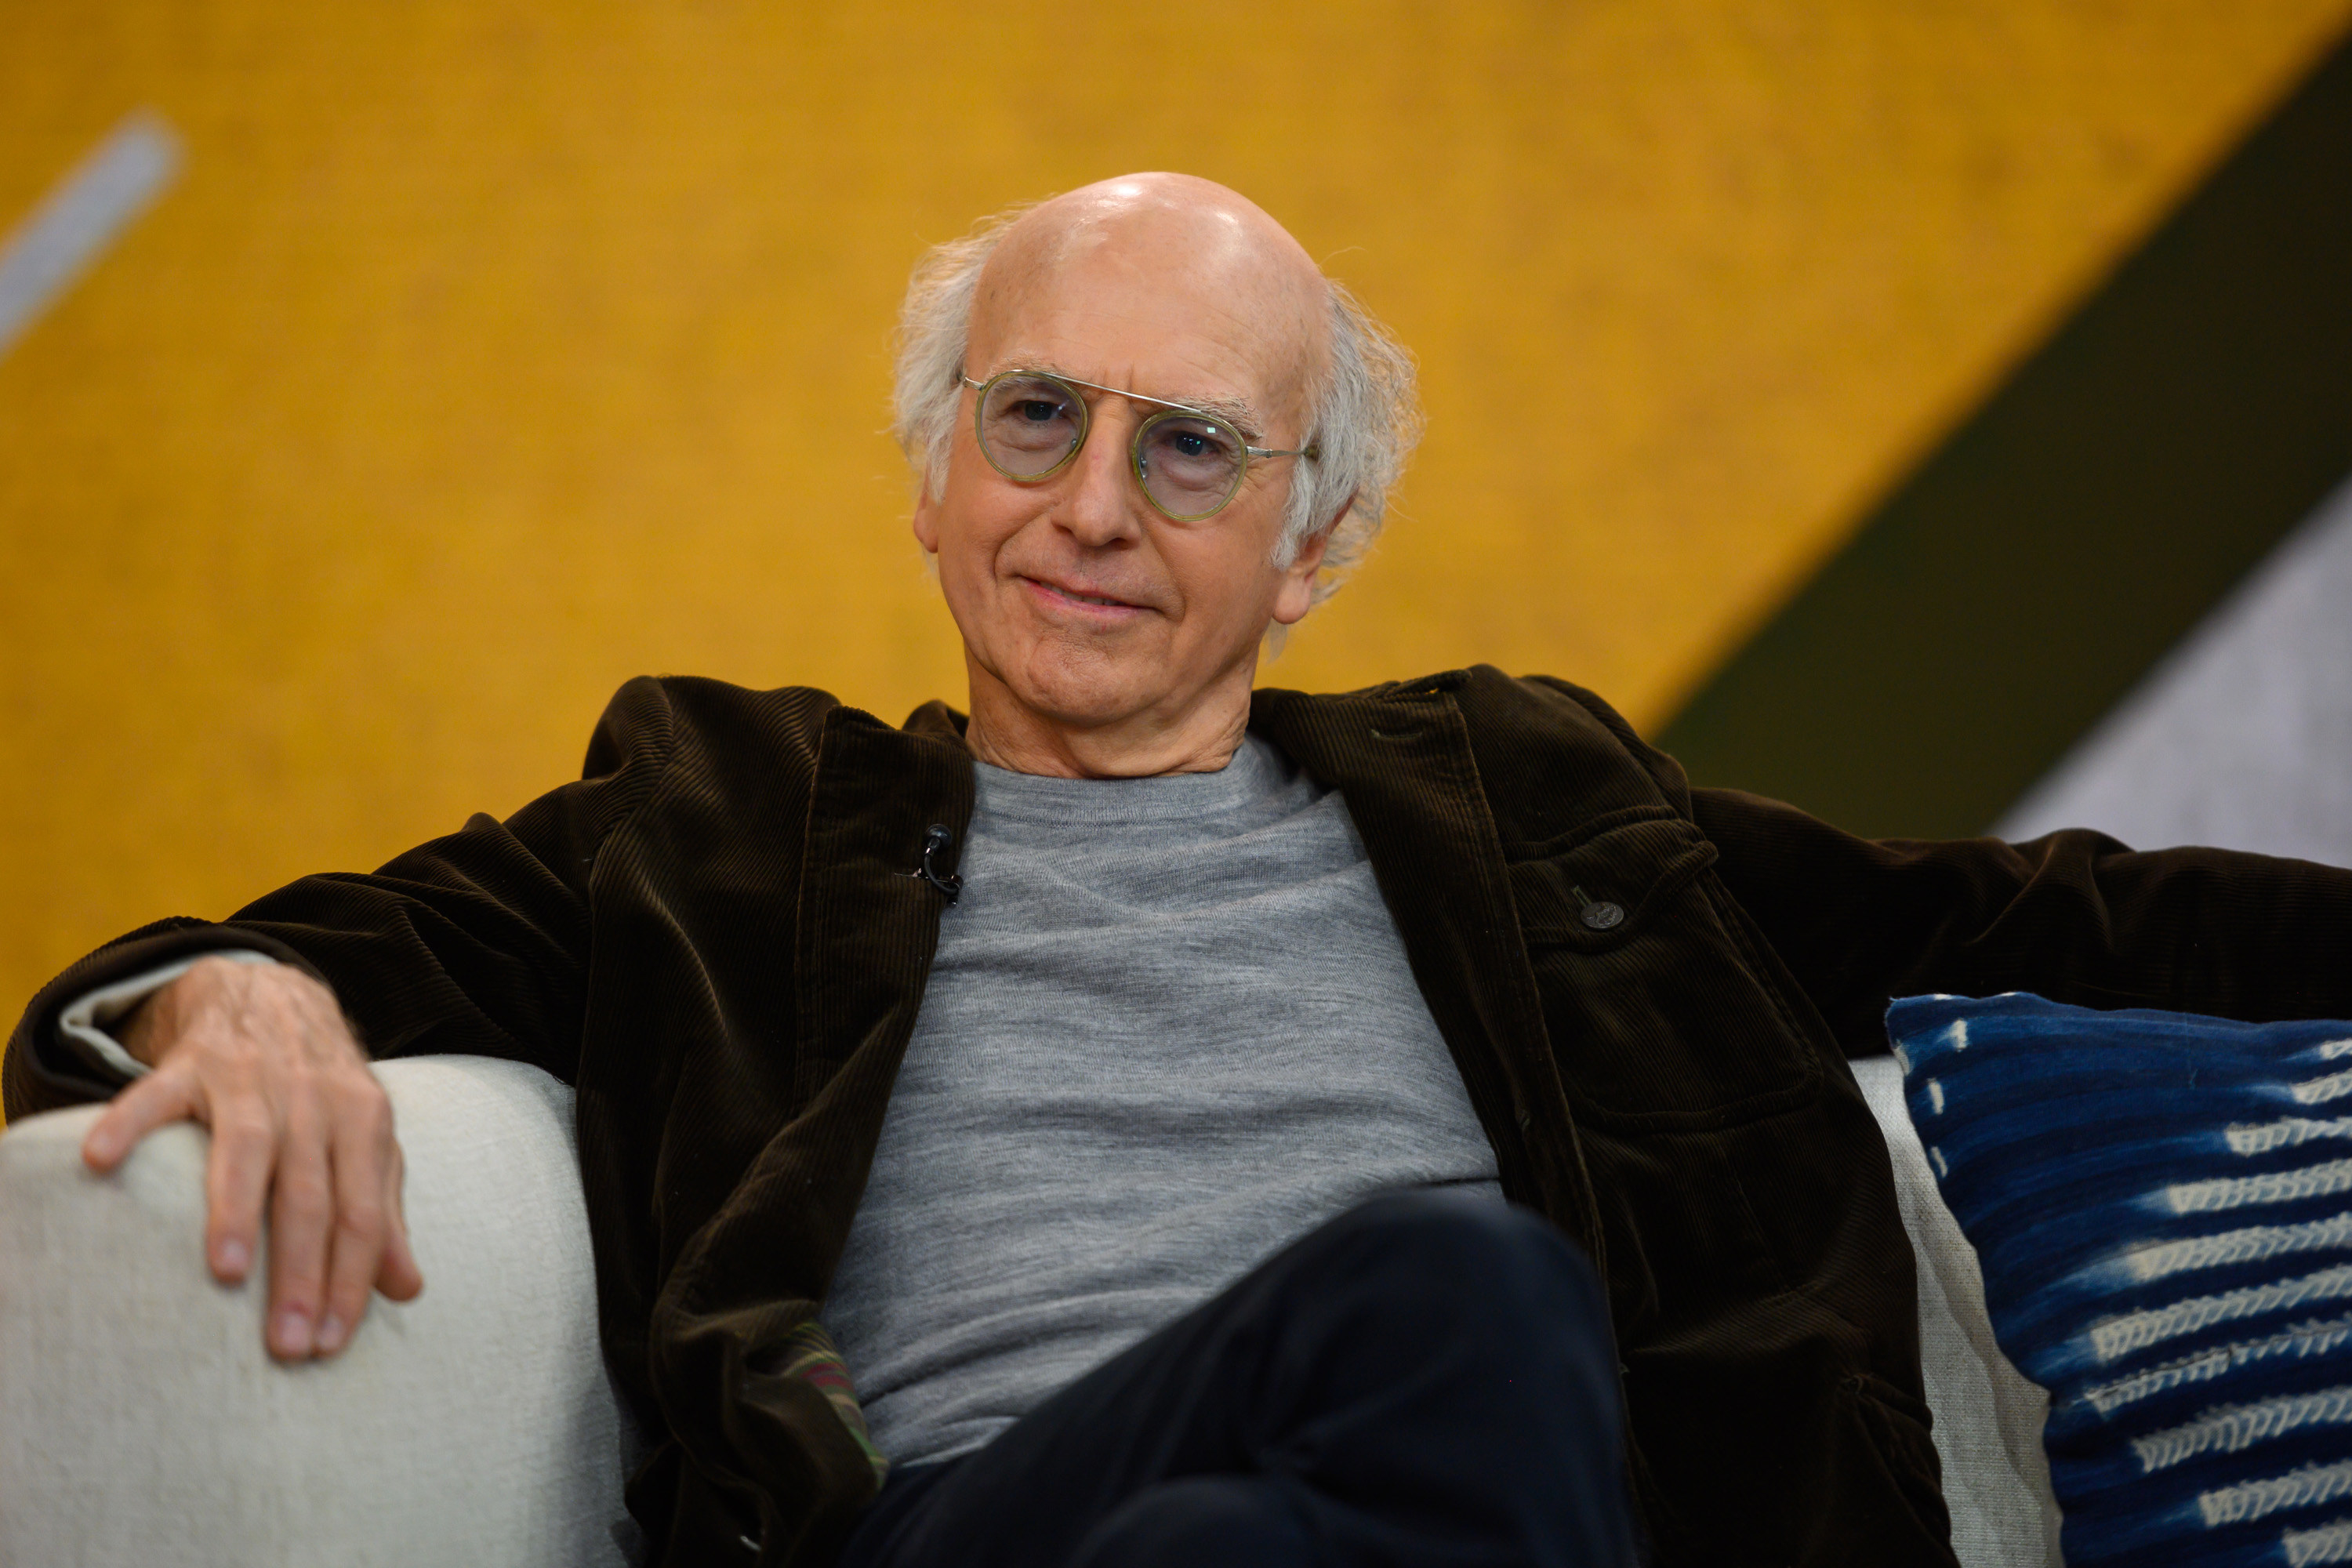 Larry David relaxing in a couch